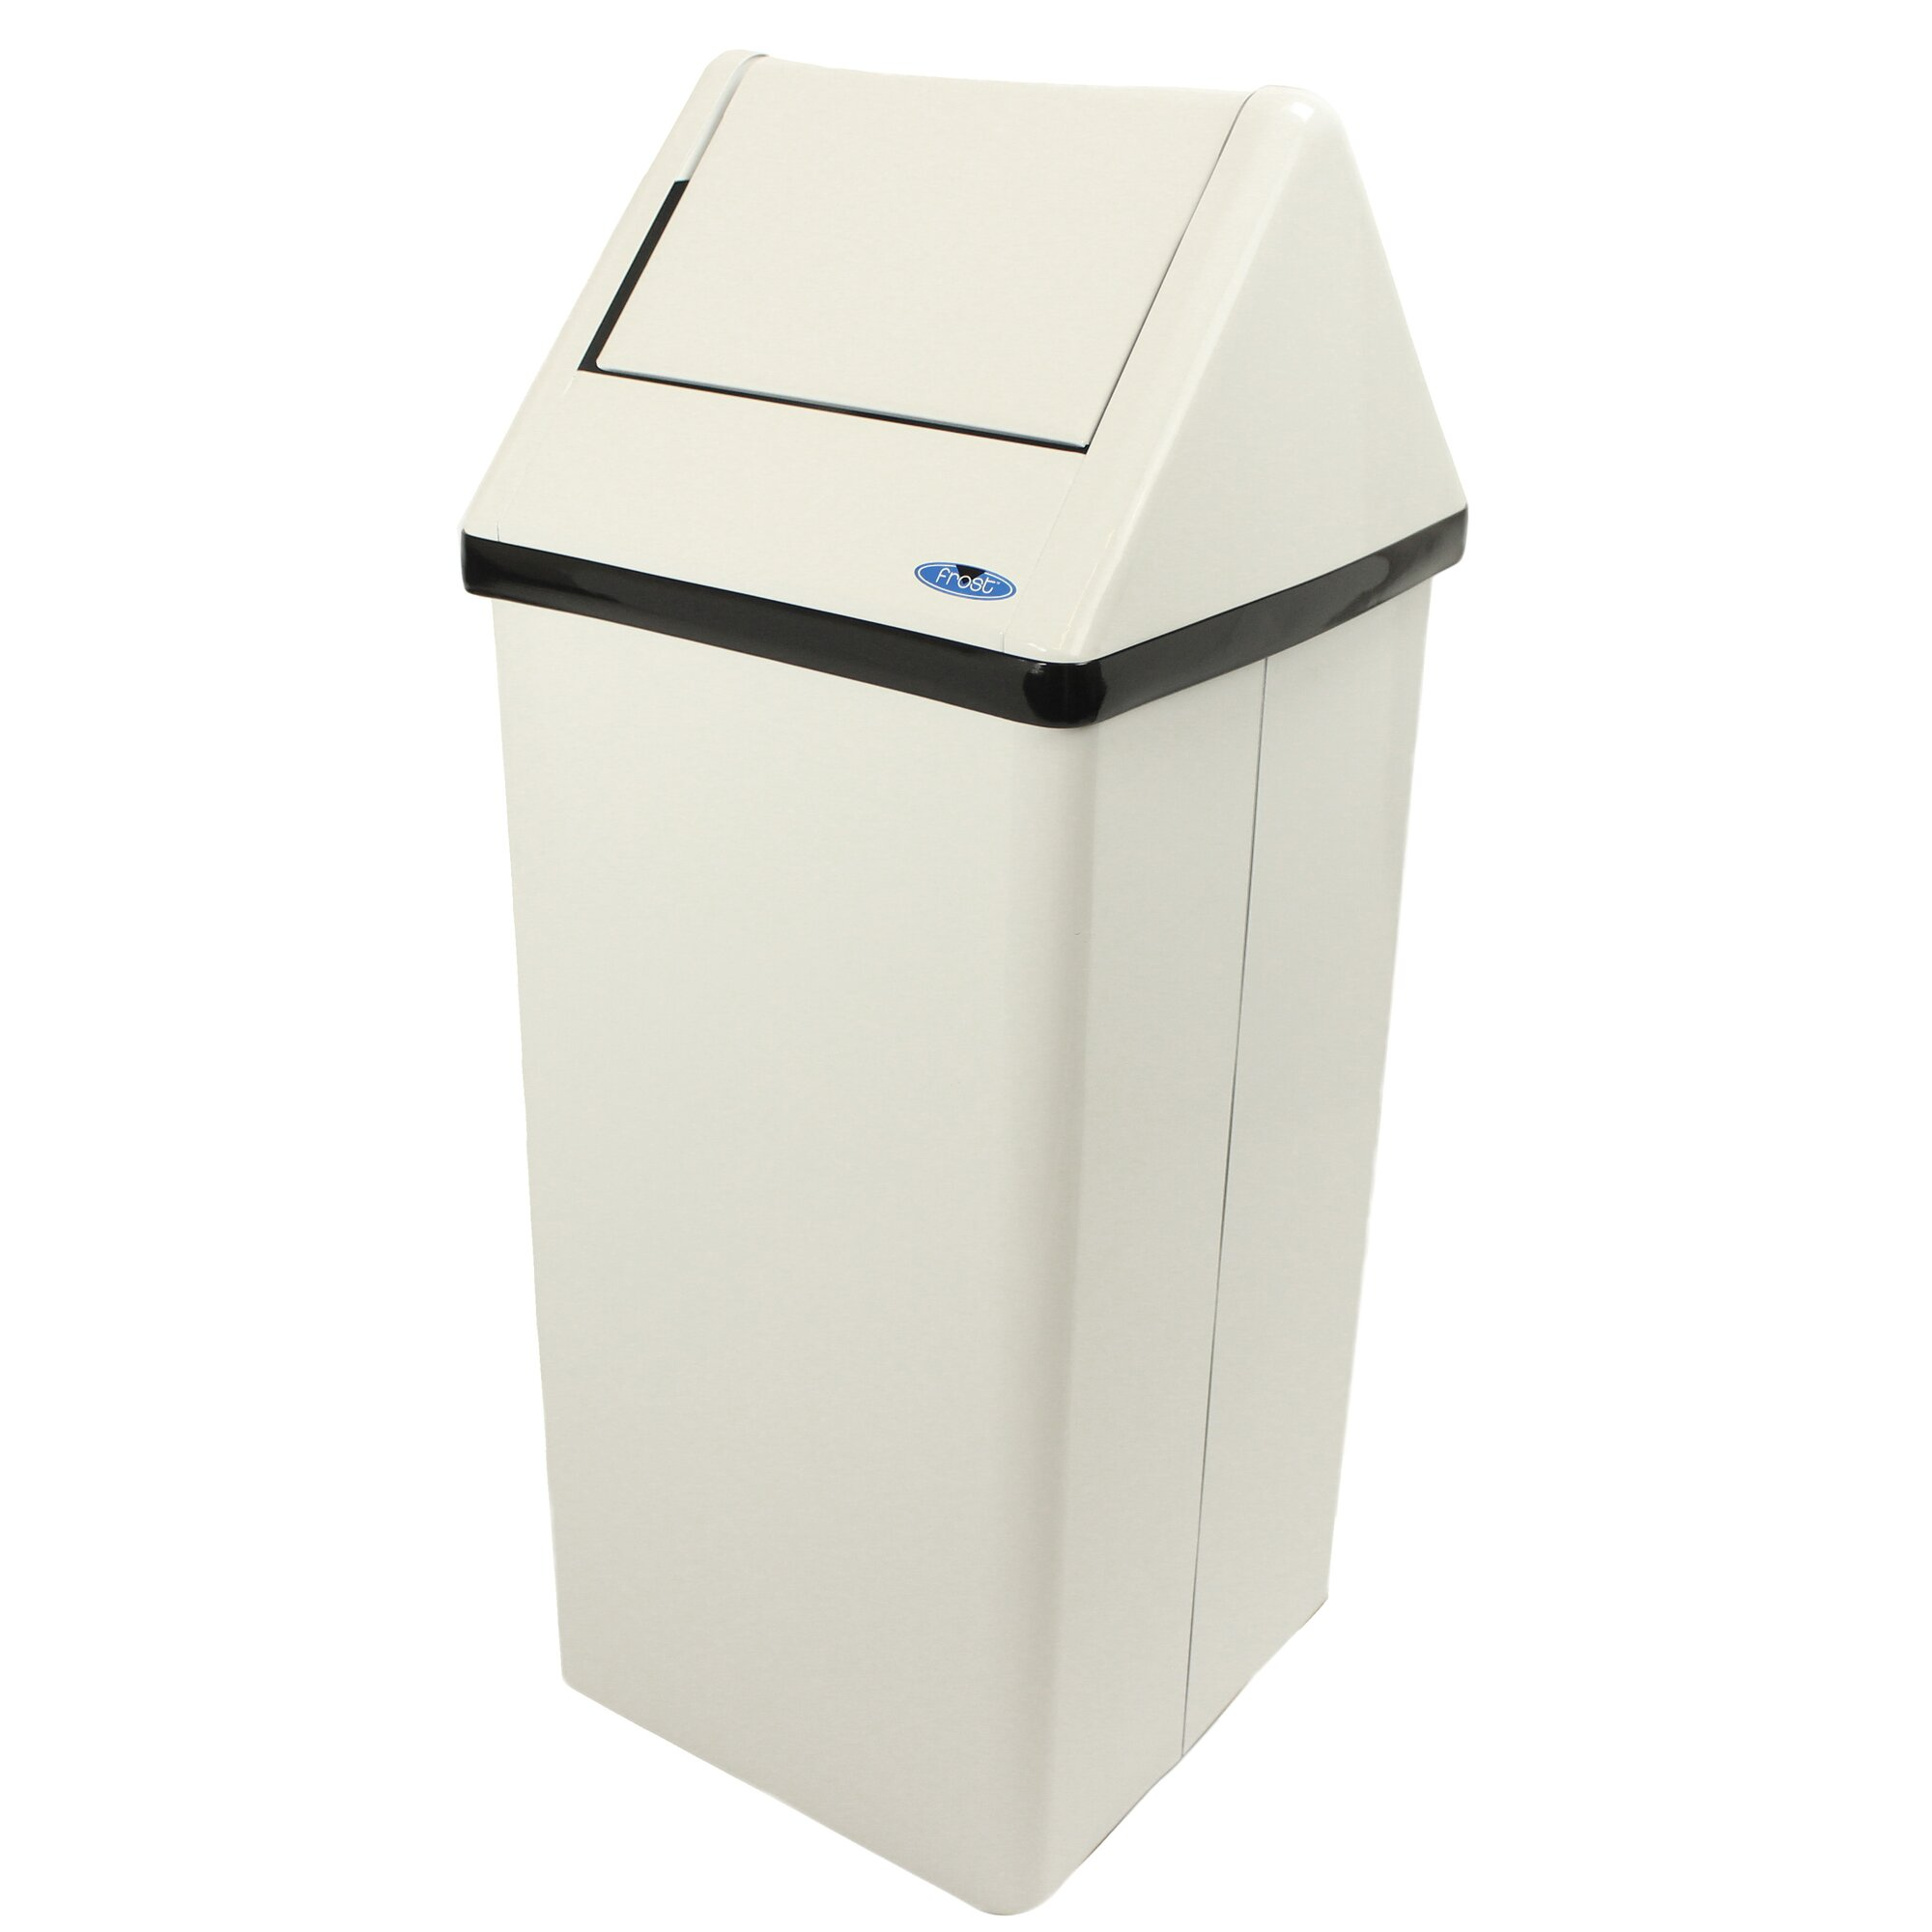 frost free standing waste receptacle swing top trash can reviews. Black Bedroom Furniture Sets. Home Design Ideas